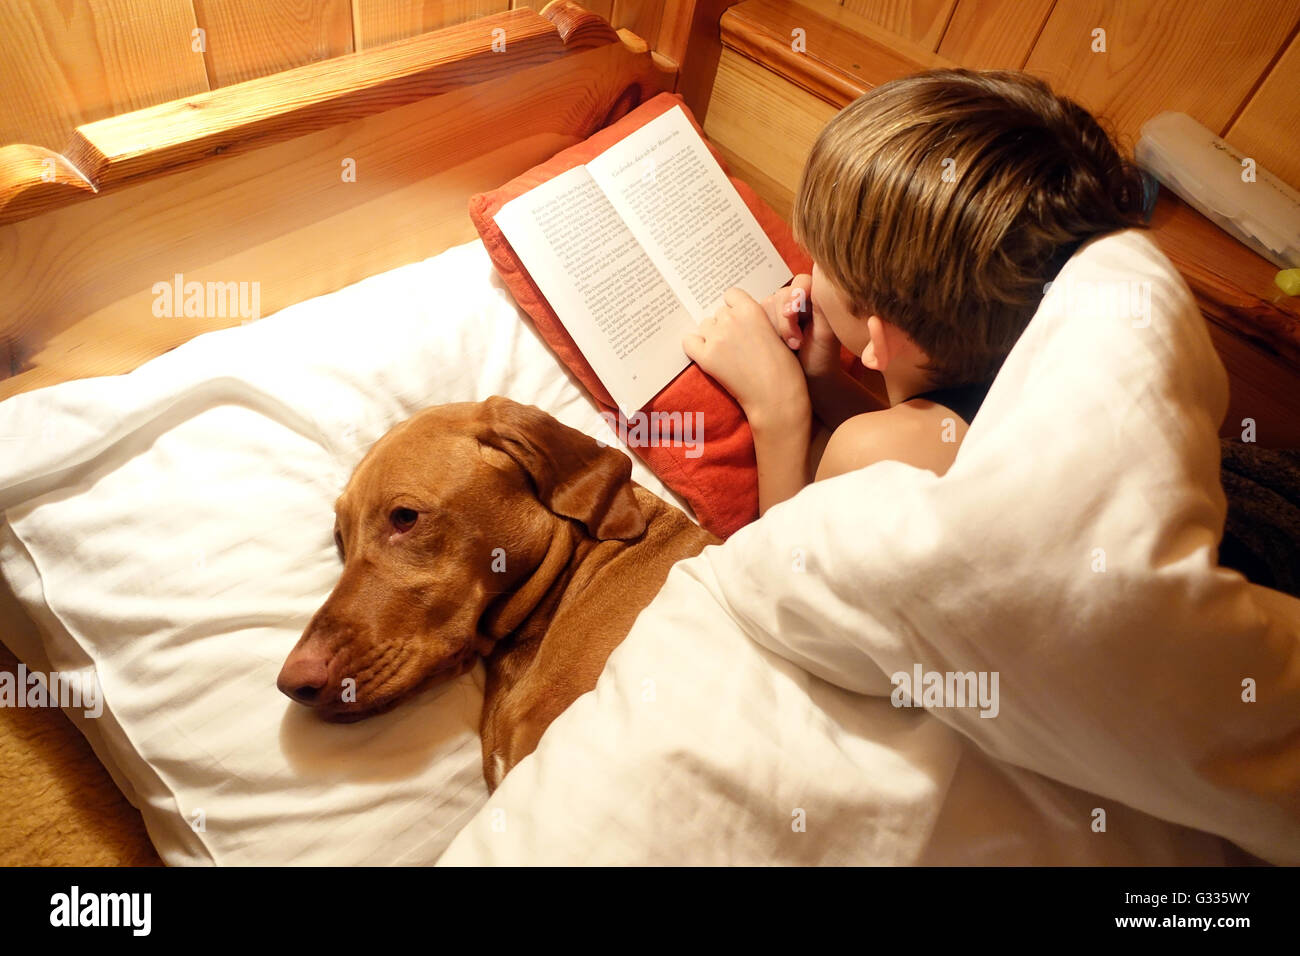 Krippenbrunn, Austria, boy is with his dog in bed reading a book - Stock Image